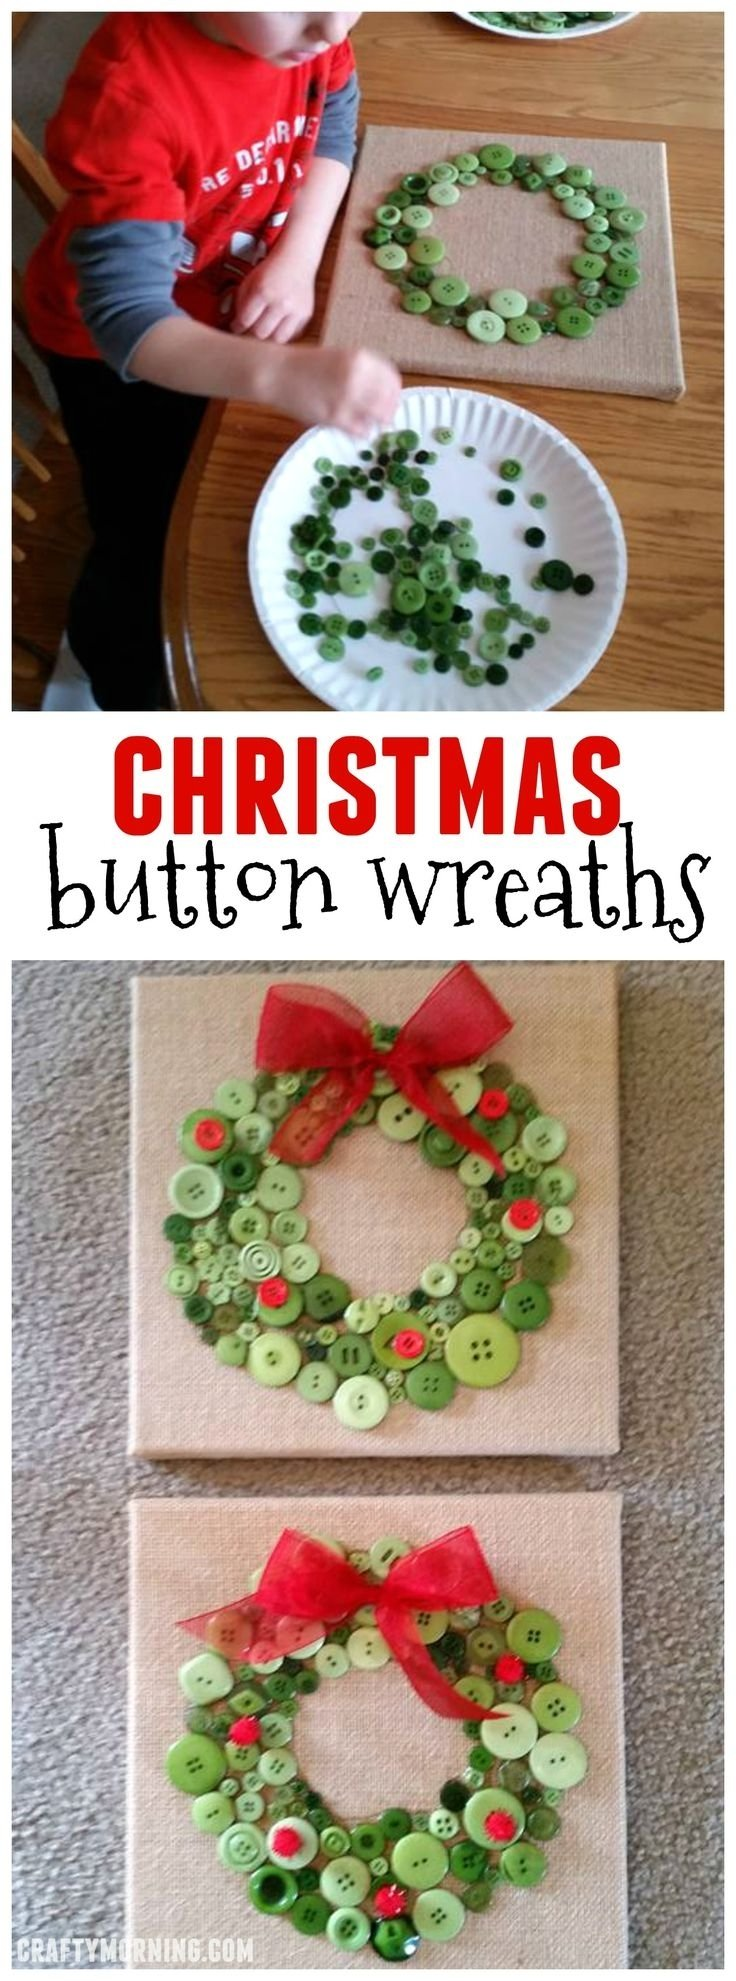 10 Most Popular Kids Christmas Craft Gift Ideas 372 best homemade christmas images on pinterest christmas crafts